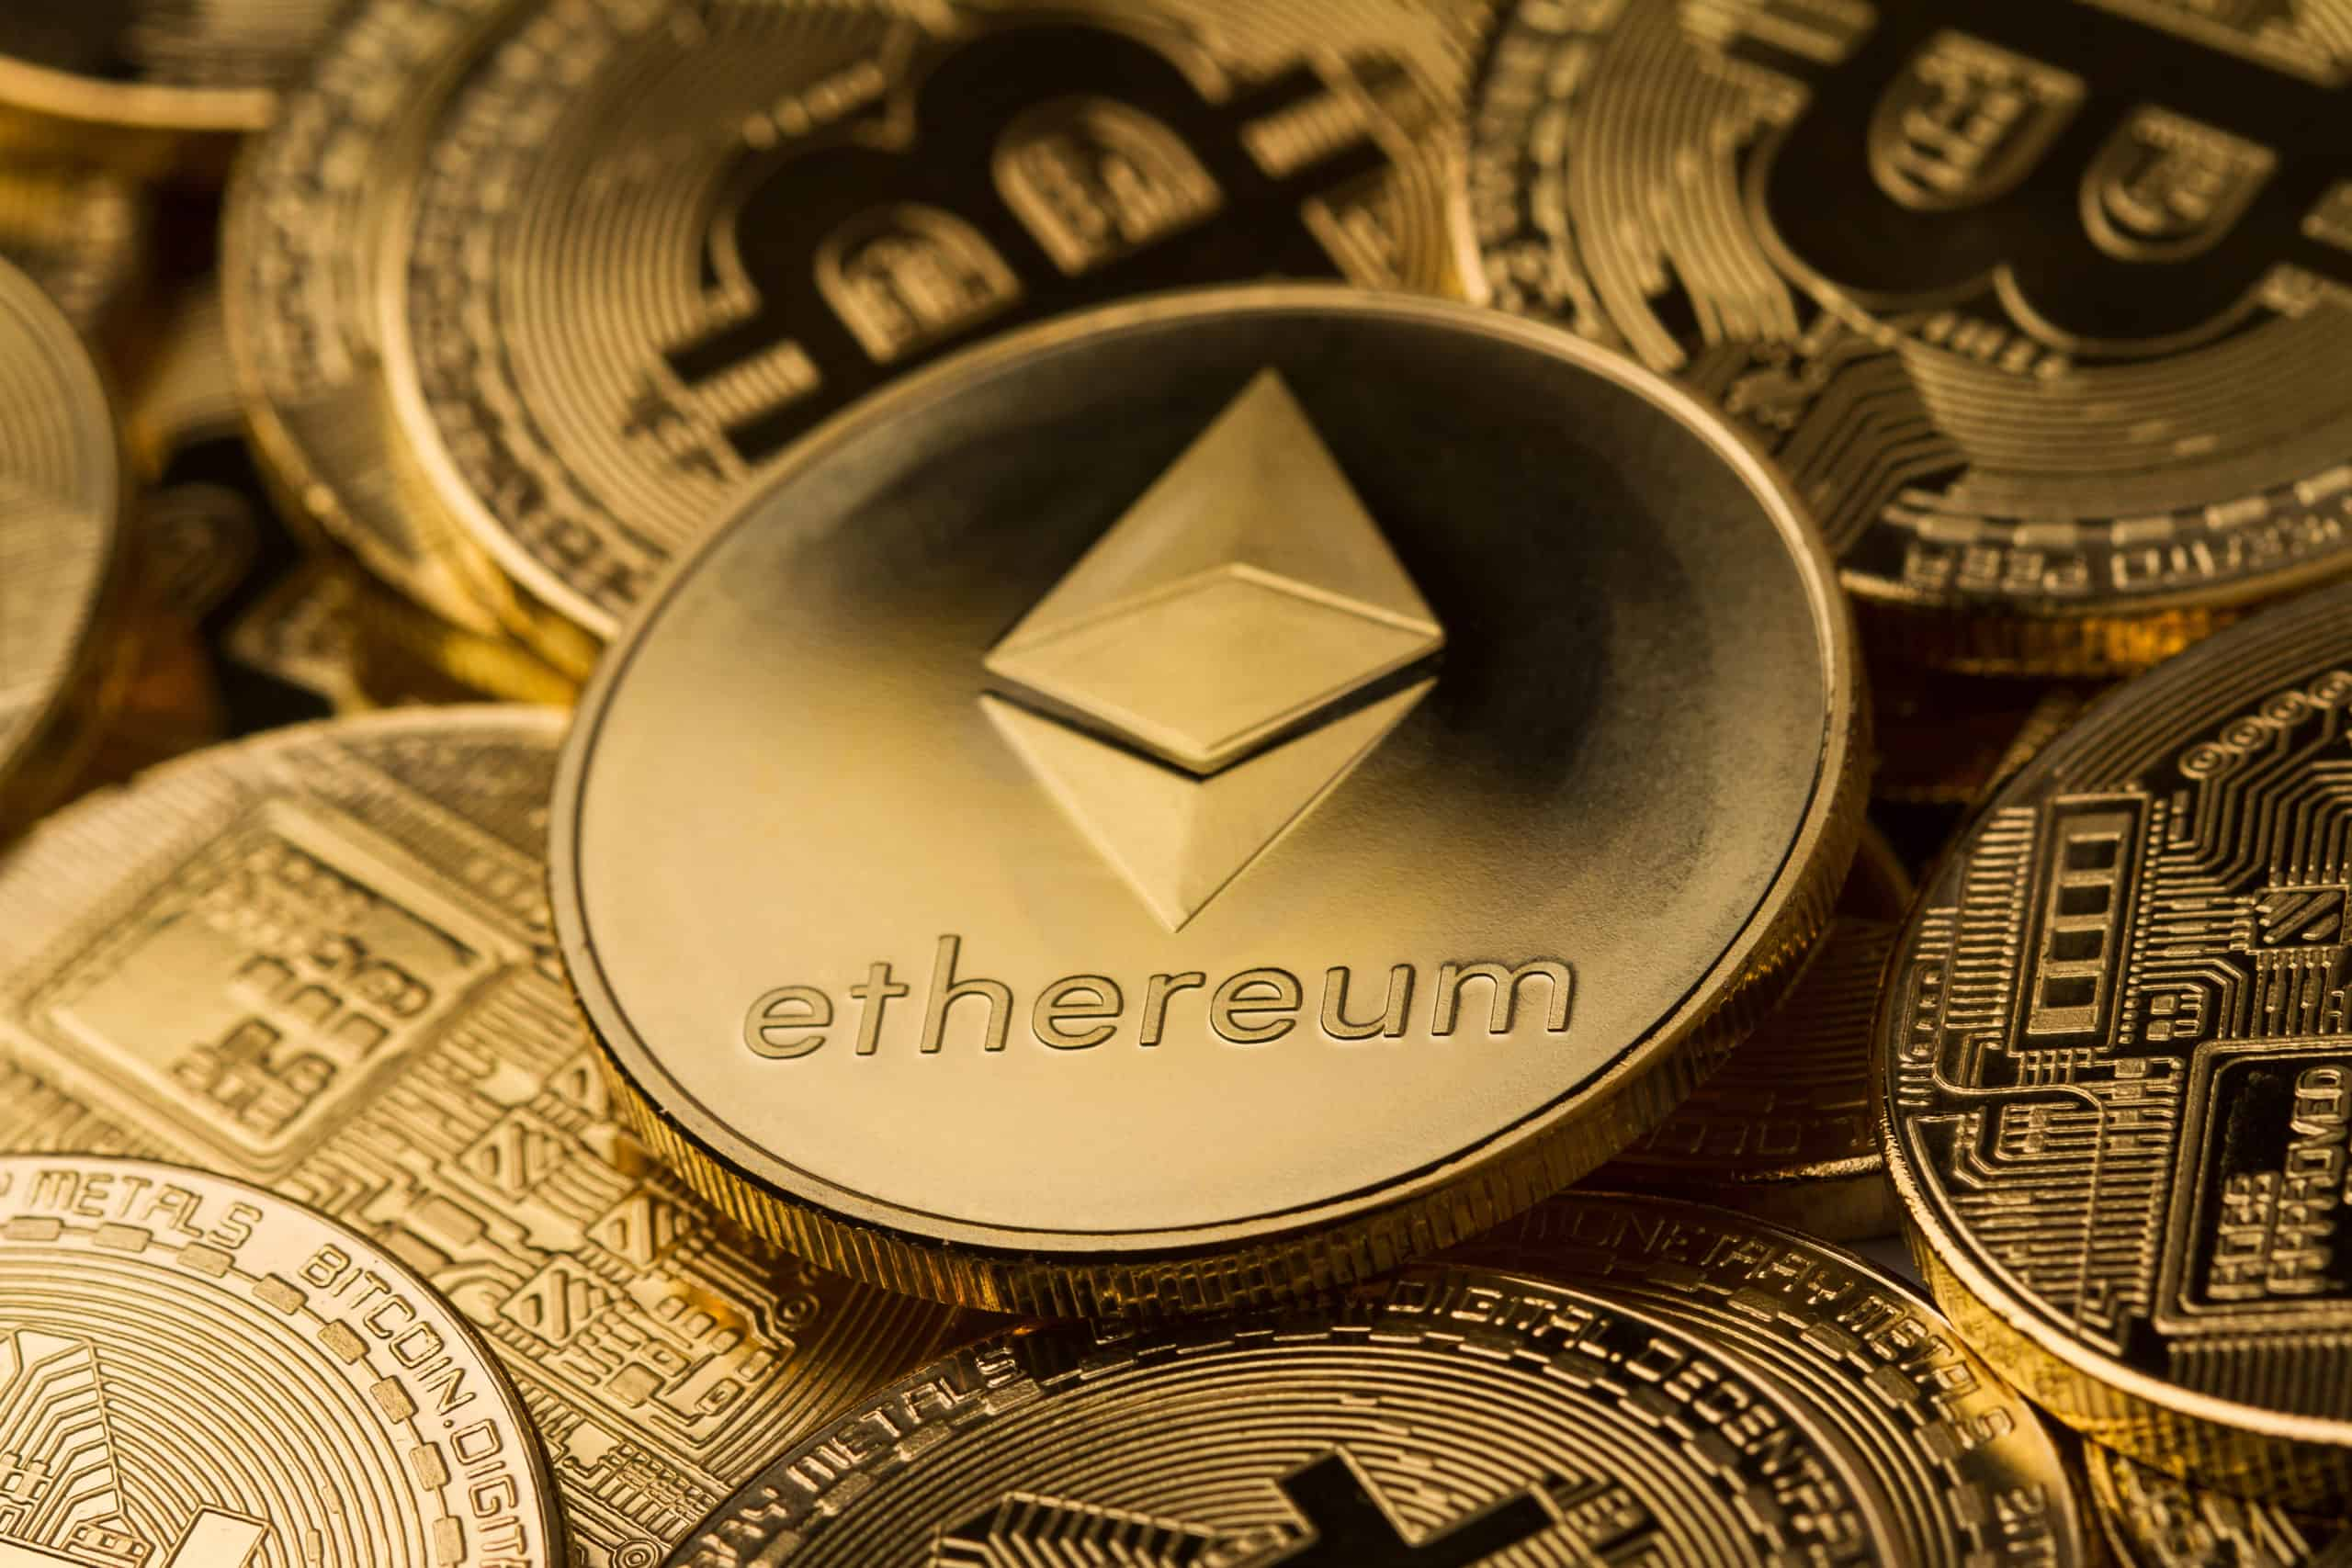 These metrics reveal why investors feel this way about Ethereum right now